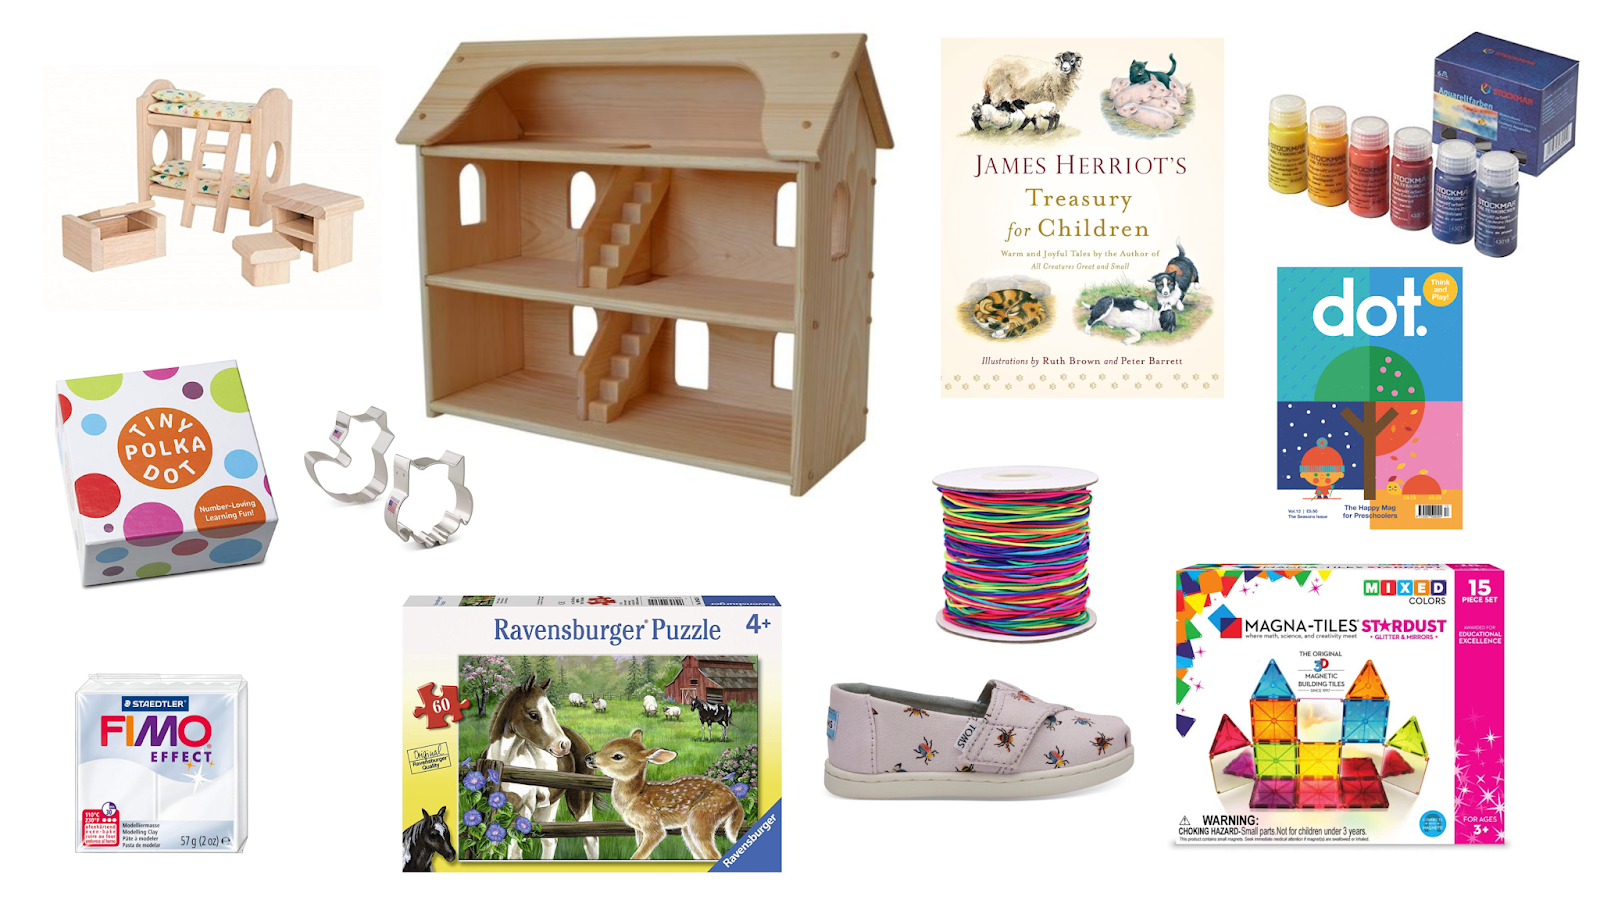 Montessori friendly gift lists for our family 2018 including joint gifts and stocking stuffers